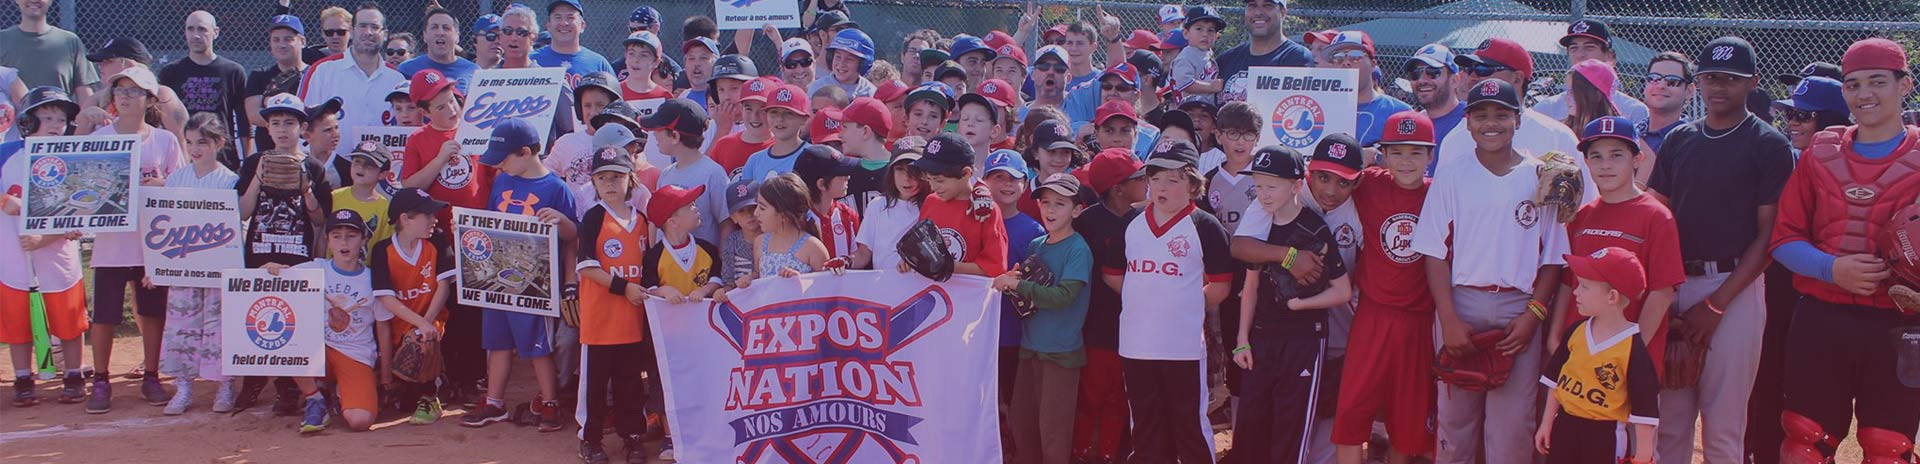 Montreal Expos Fans - Lets get involved - ExposNation